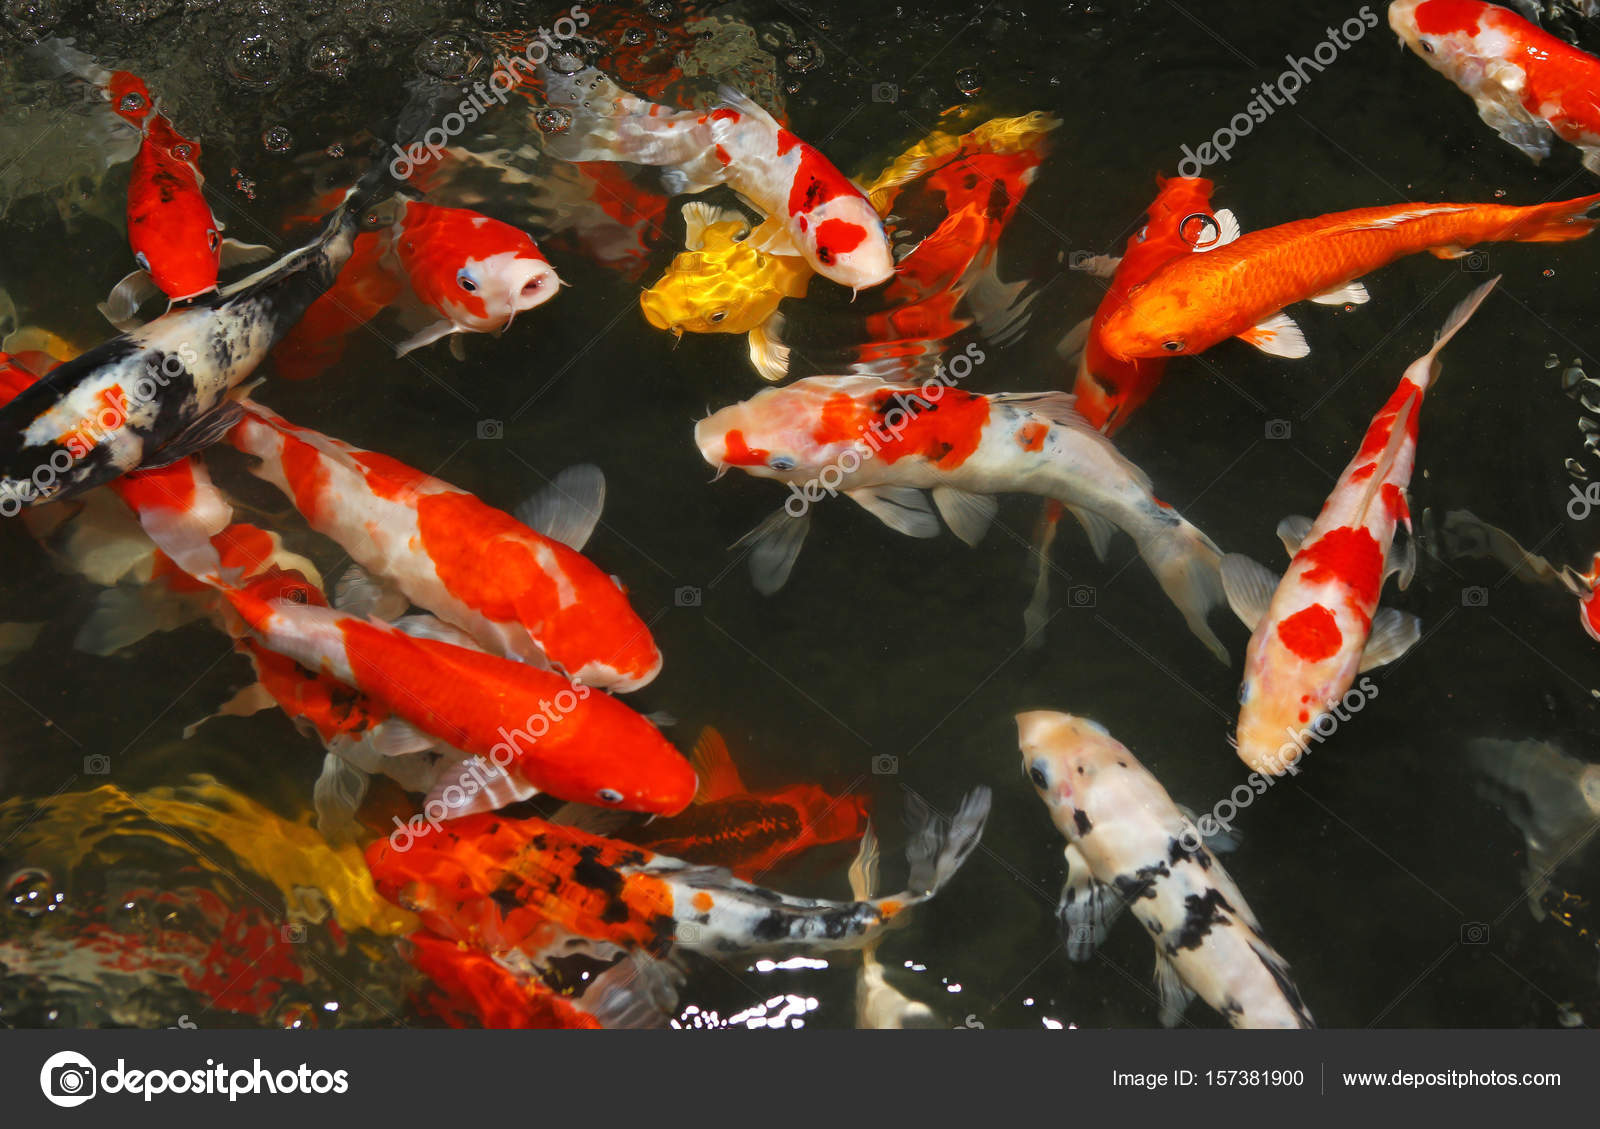 feeding koi fish with